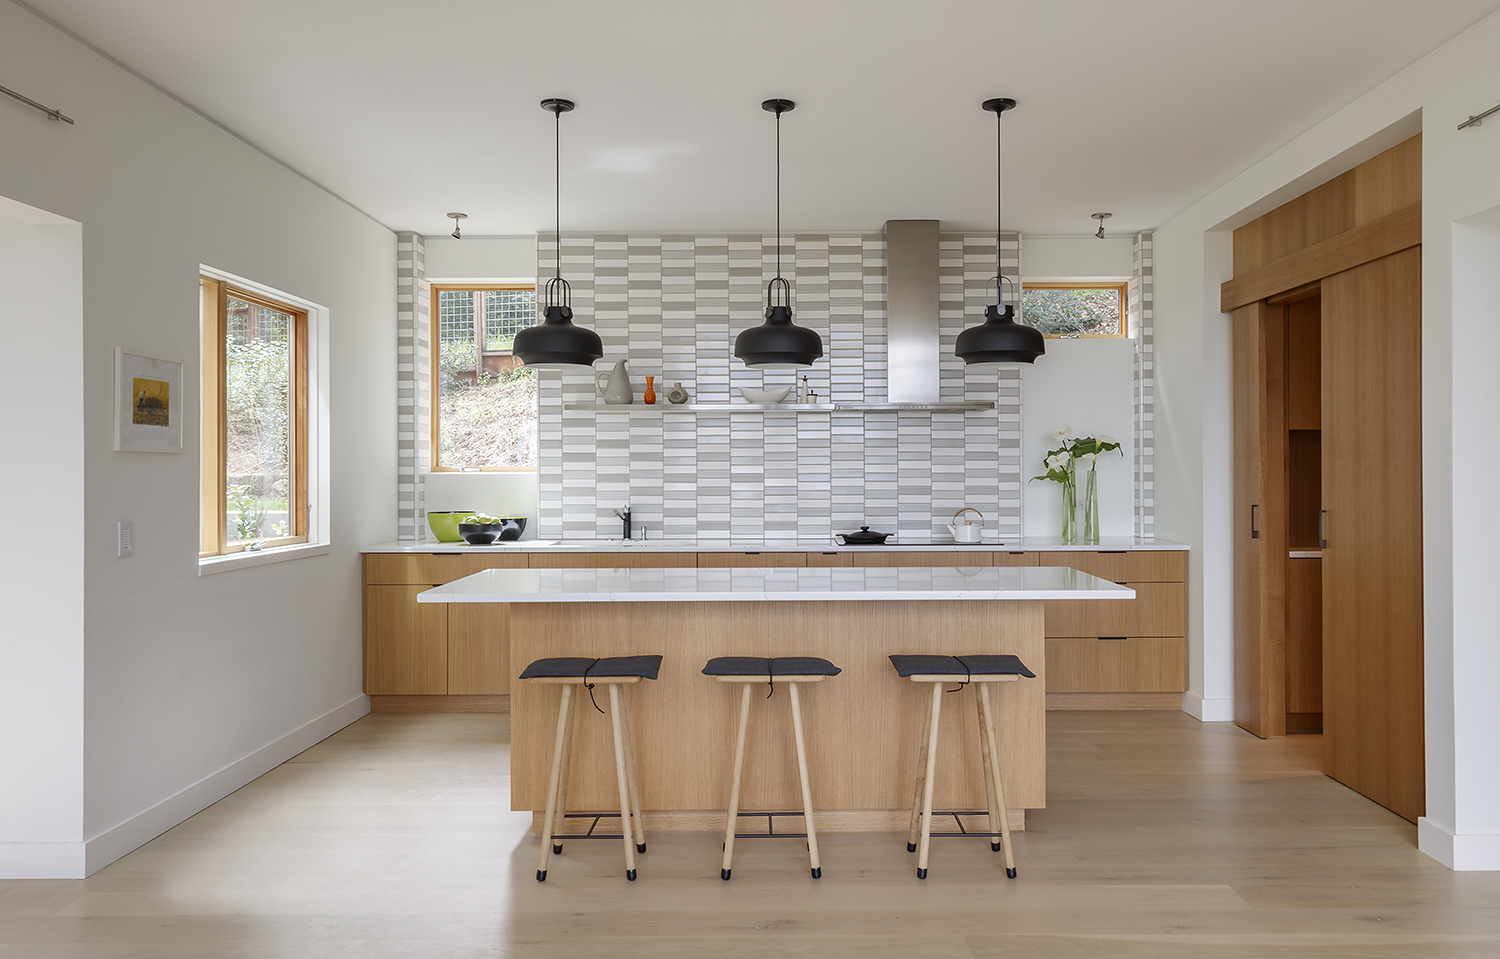 All the kitchen appliances are by GE Monogram. The pendant lights are Copenhagen SC6 pendants, a piece developed by Space Copenhagen for &tradition.